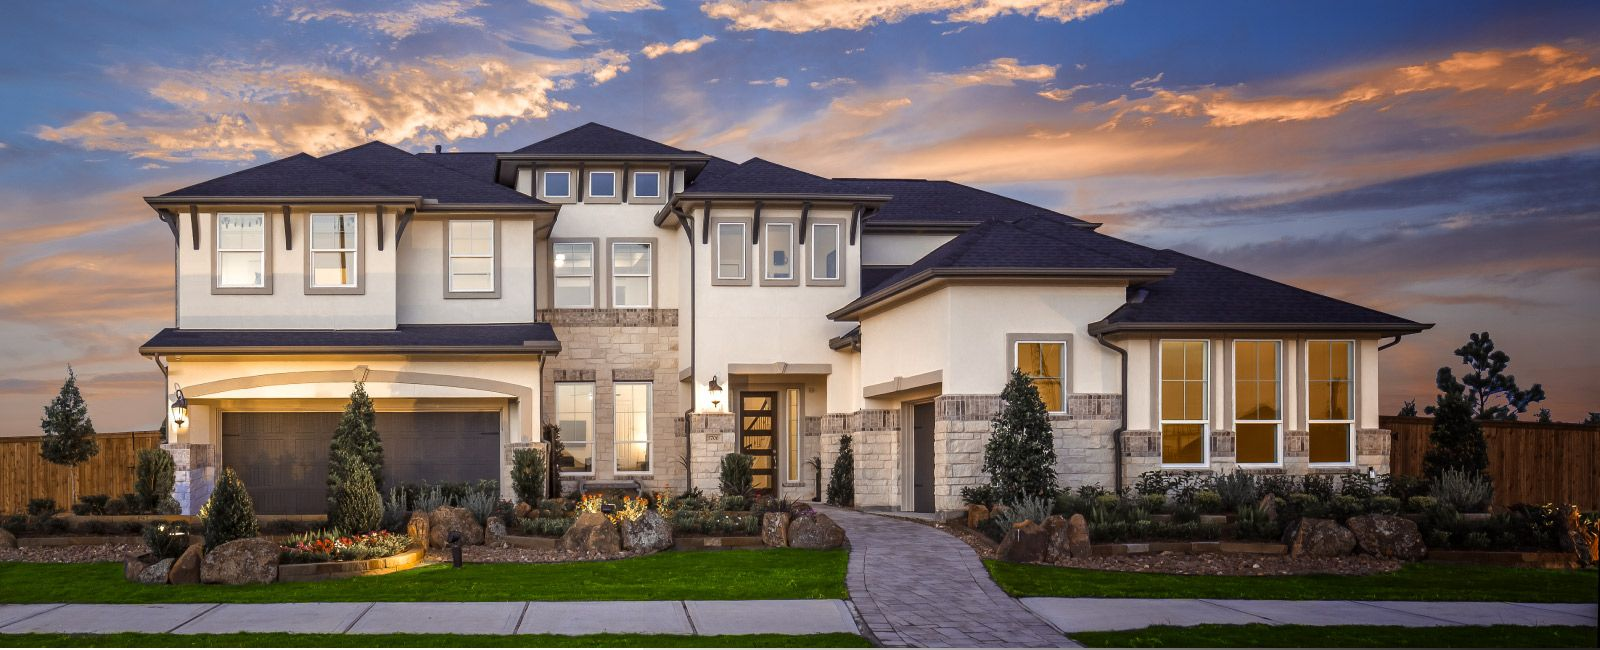 Austin home builders homes for sale in houston tx